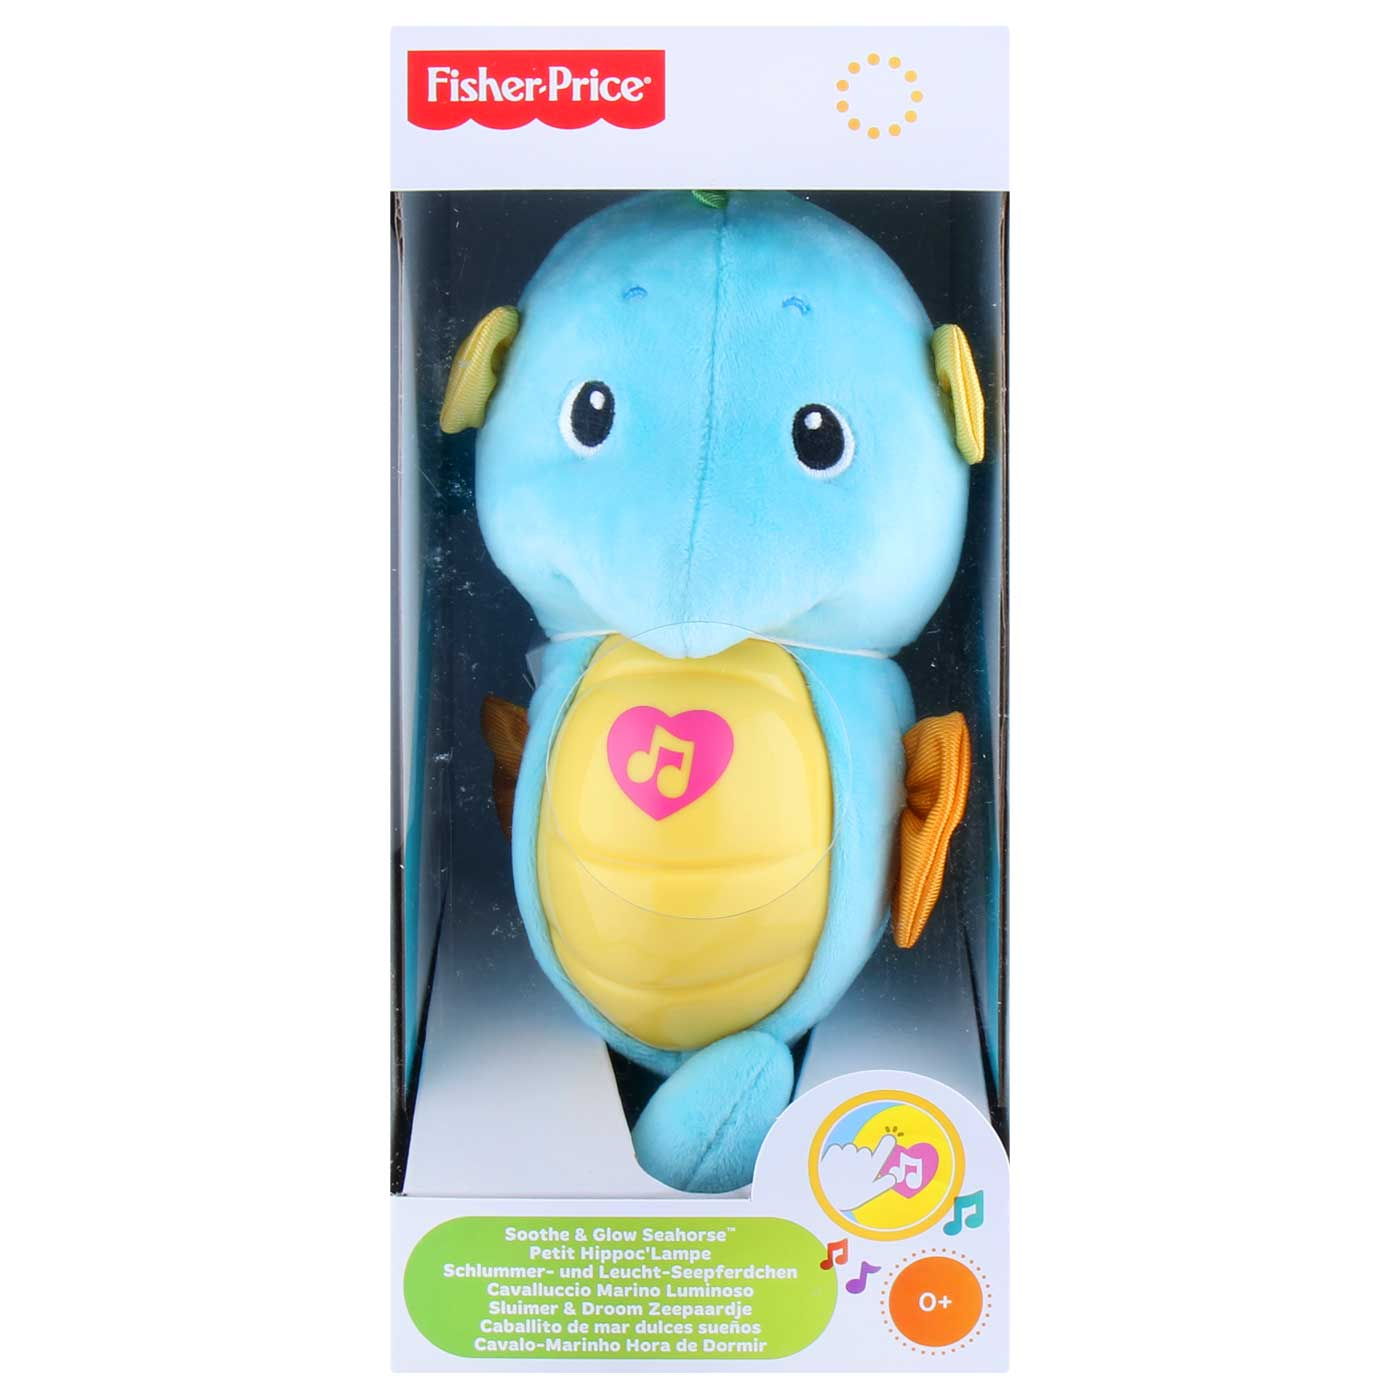 Fisher Price Soothe & Glow Seahorse WB DGH82